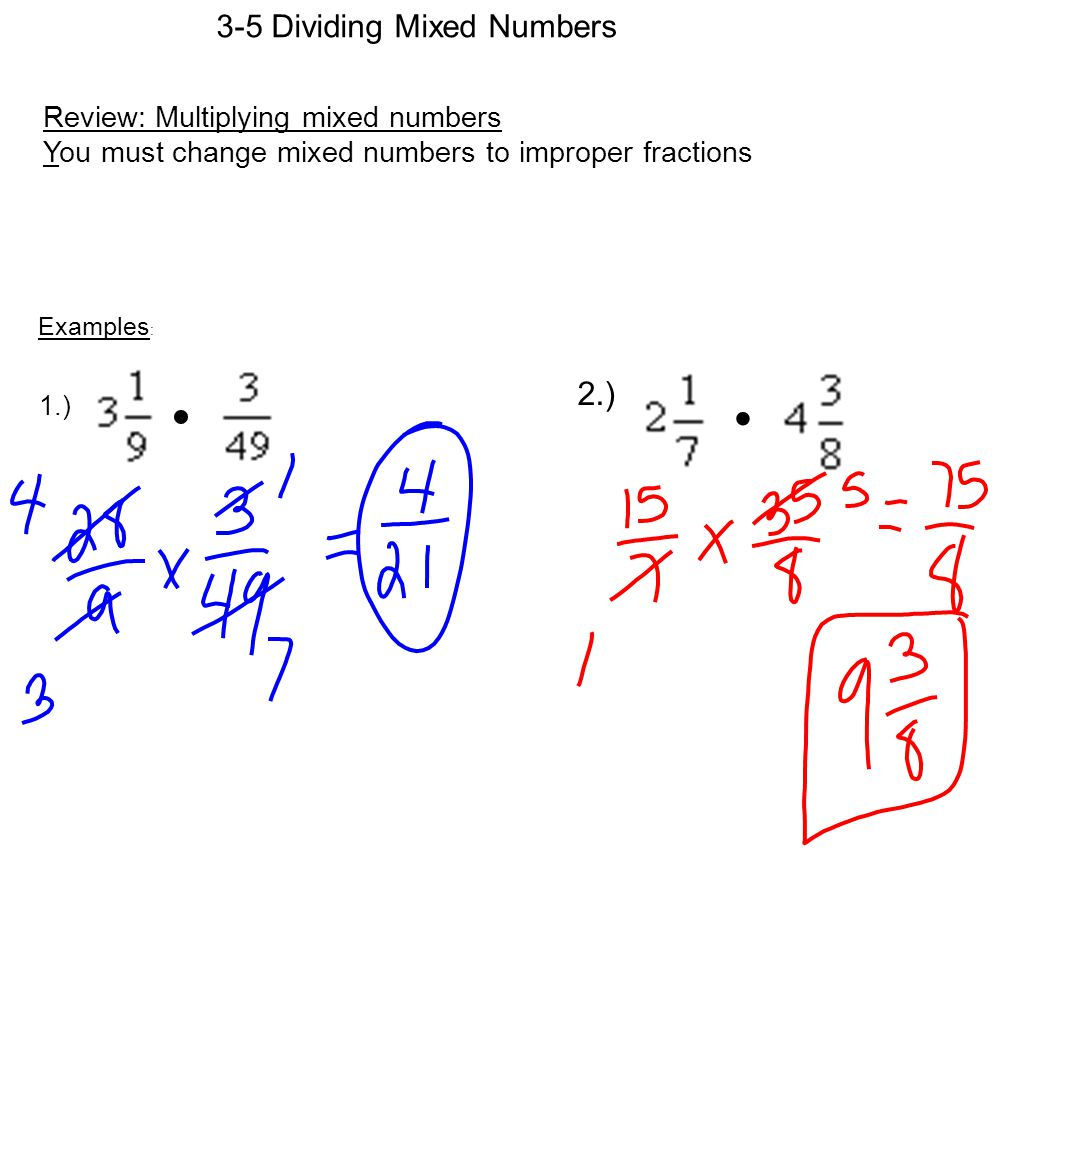 2.) 3-5 dividing mixed numbers review: multiplying mixed numbers